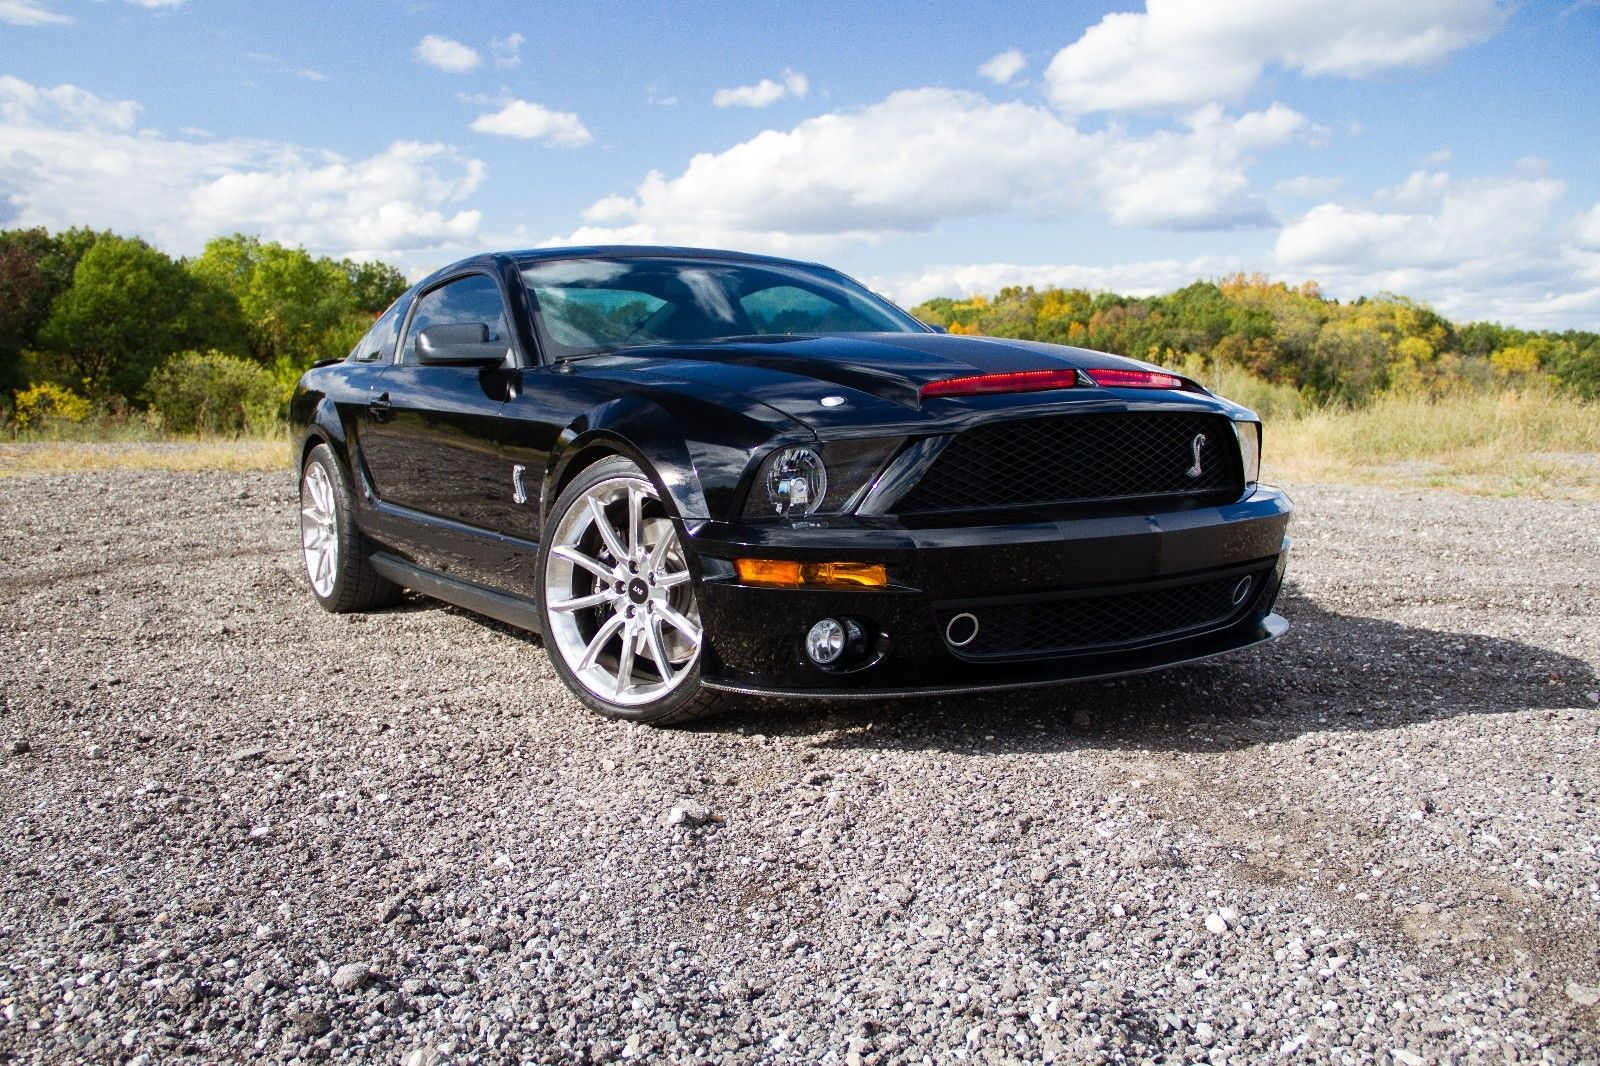 Awesome 2008 ford mustang shelby gt500 2008 shelby gt500 knight rider picture car kitt the only shelby from the show 2018 2019